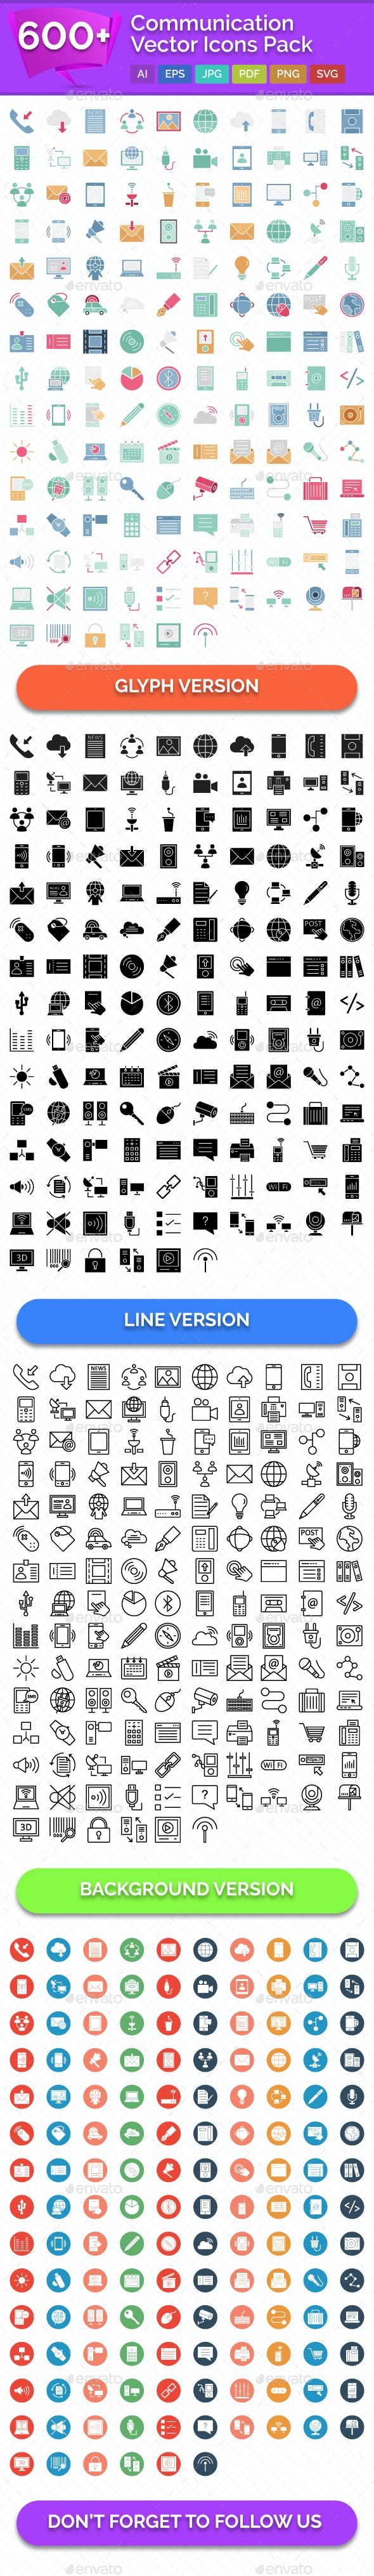 600+ Communication Vector Icons Pack - Icons